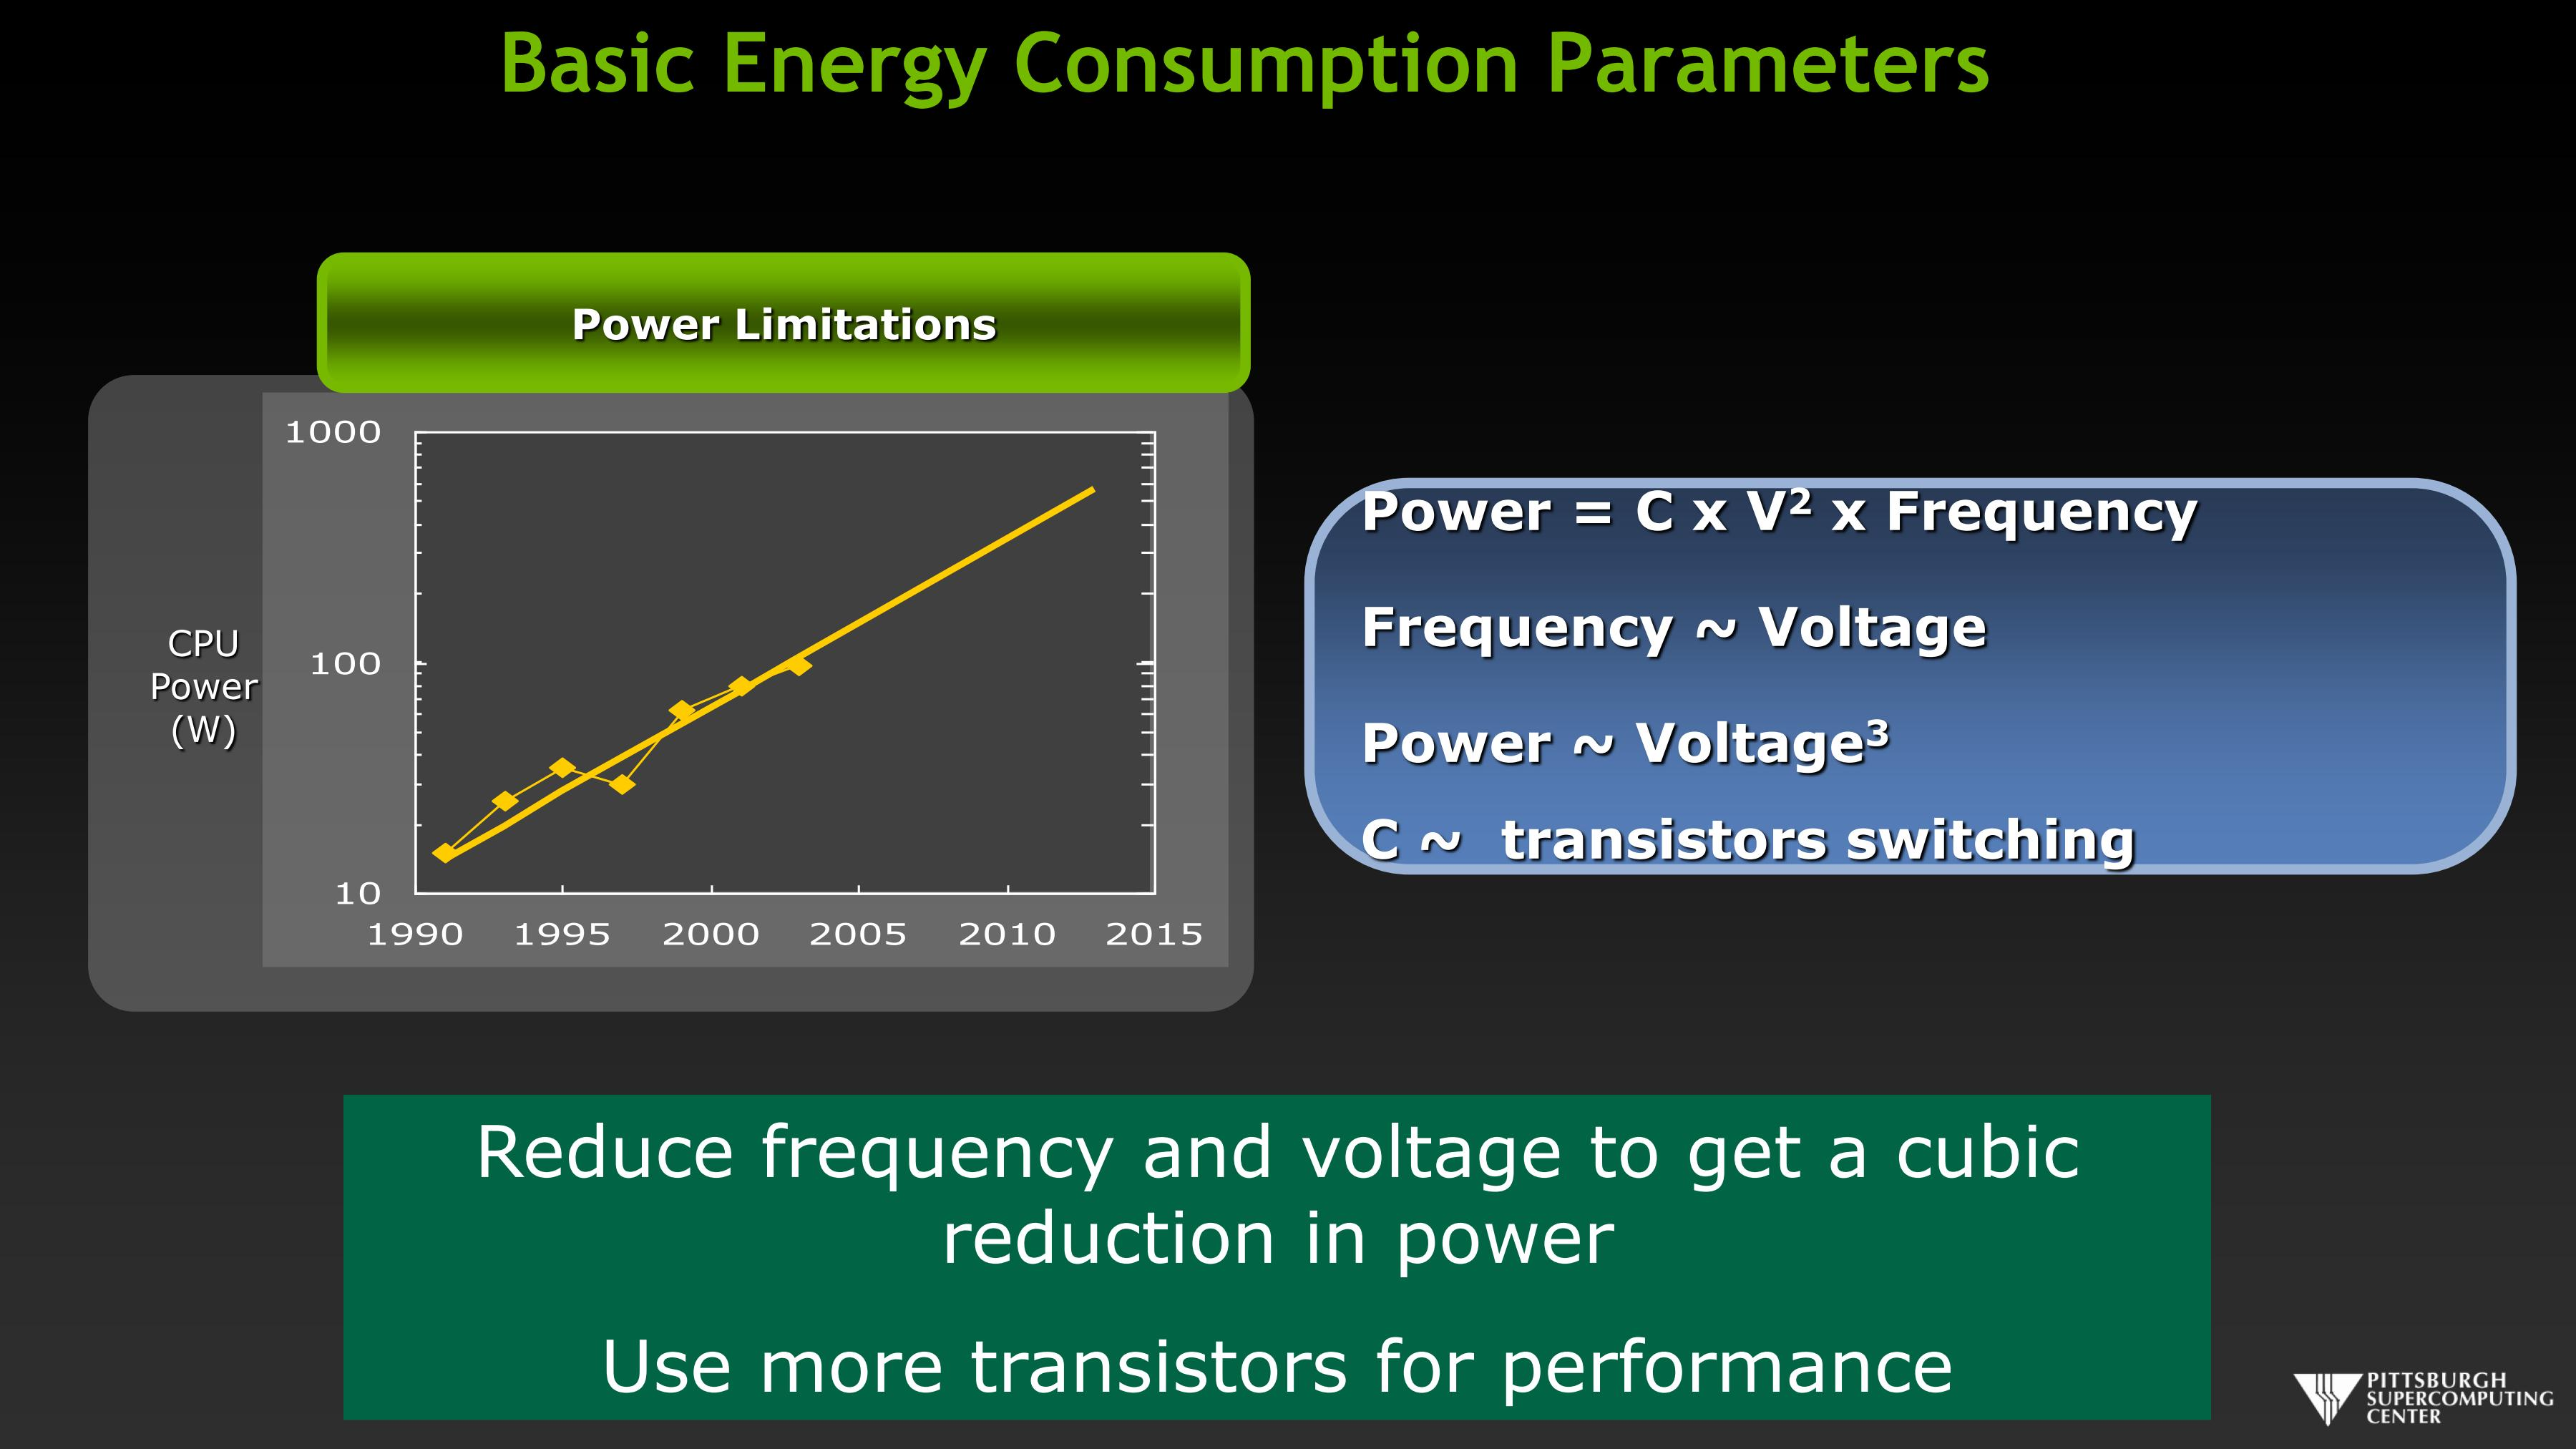 Basic Energy Consumption Parmeters